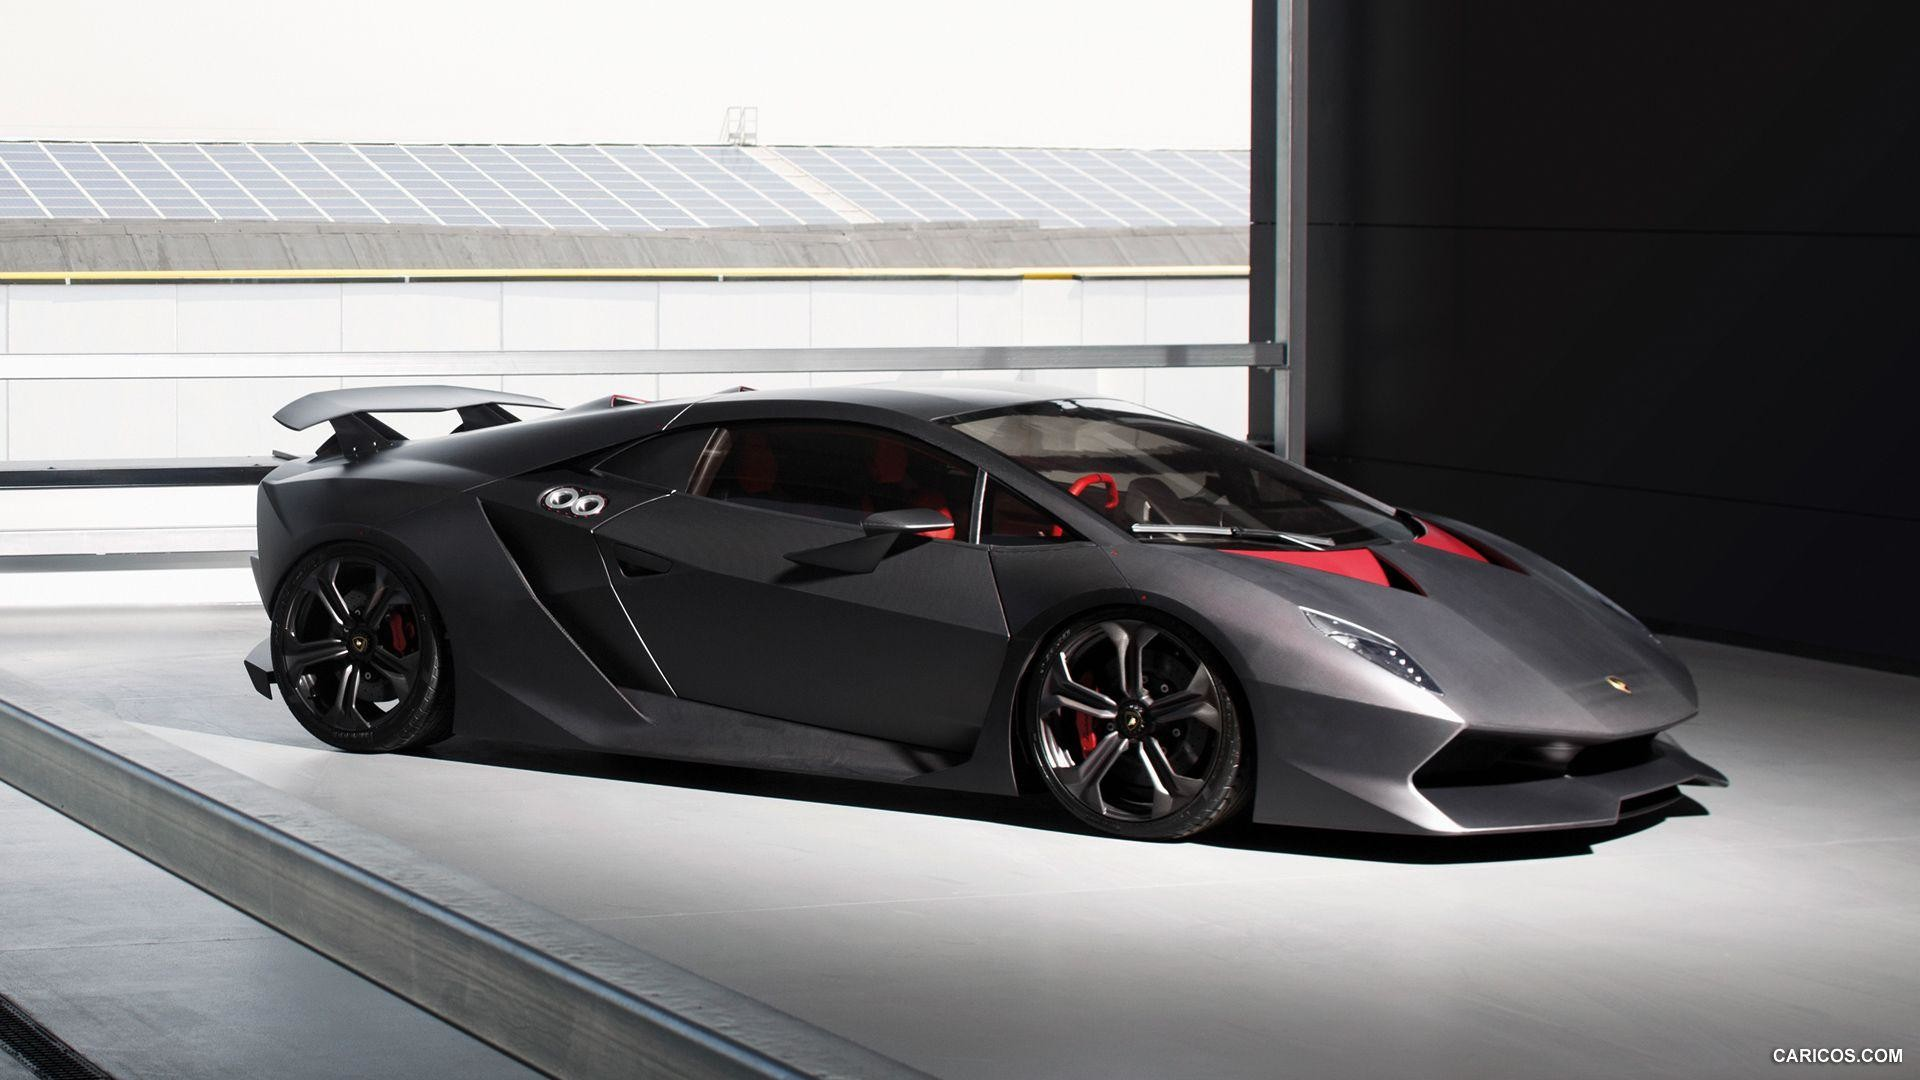 3840x2160 Wallpaper Lamborghini ...